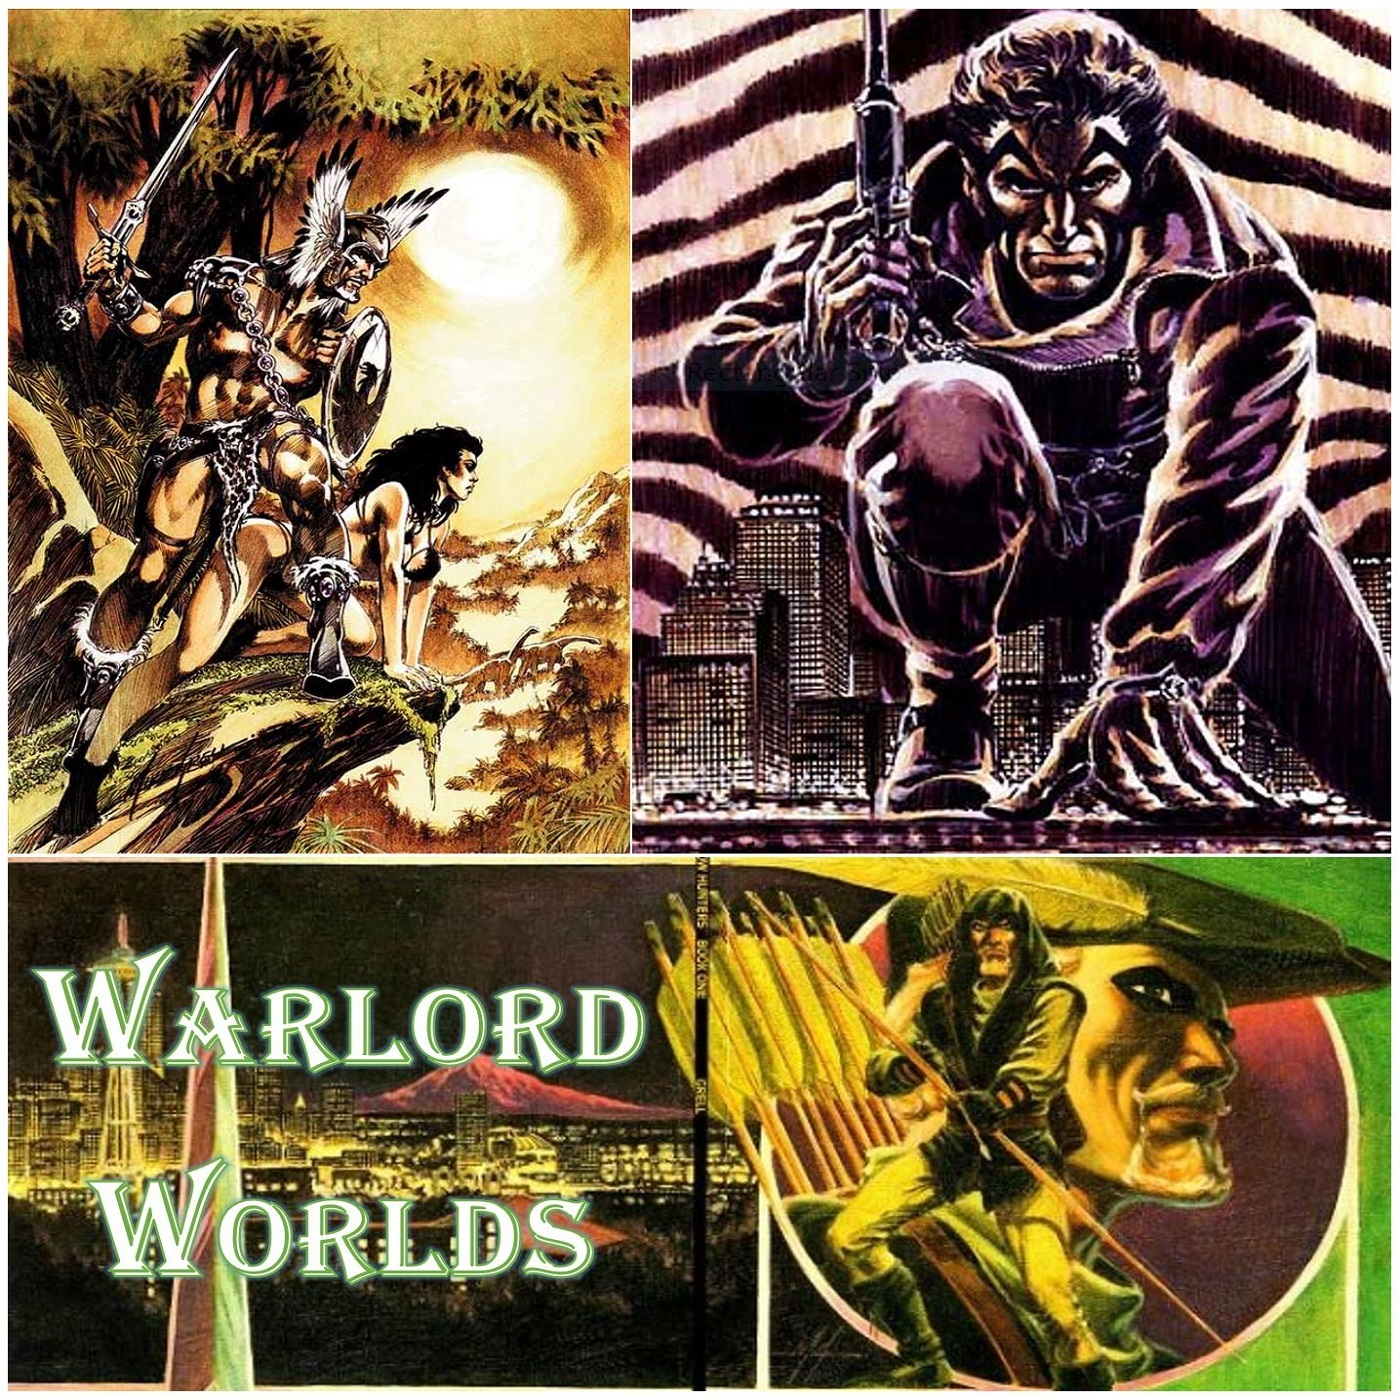 Warlord Worlds: Episode 2